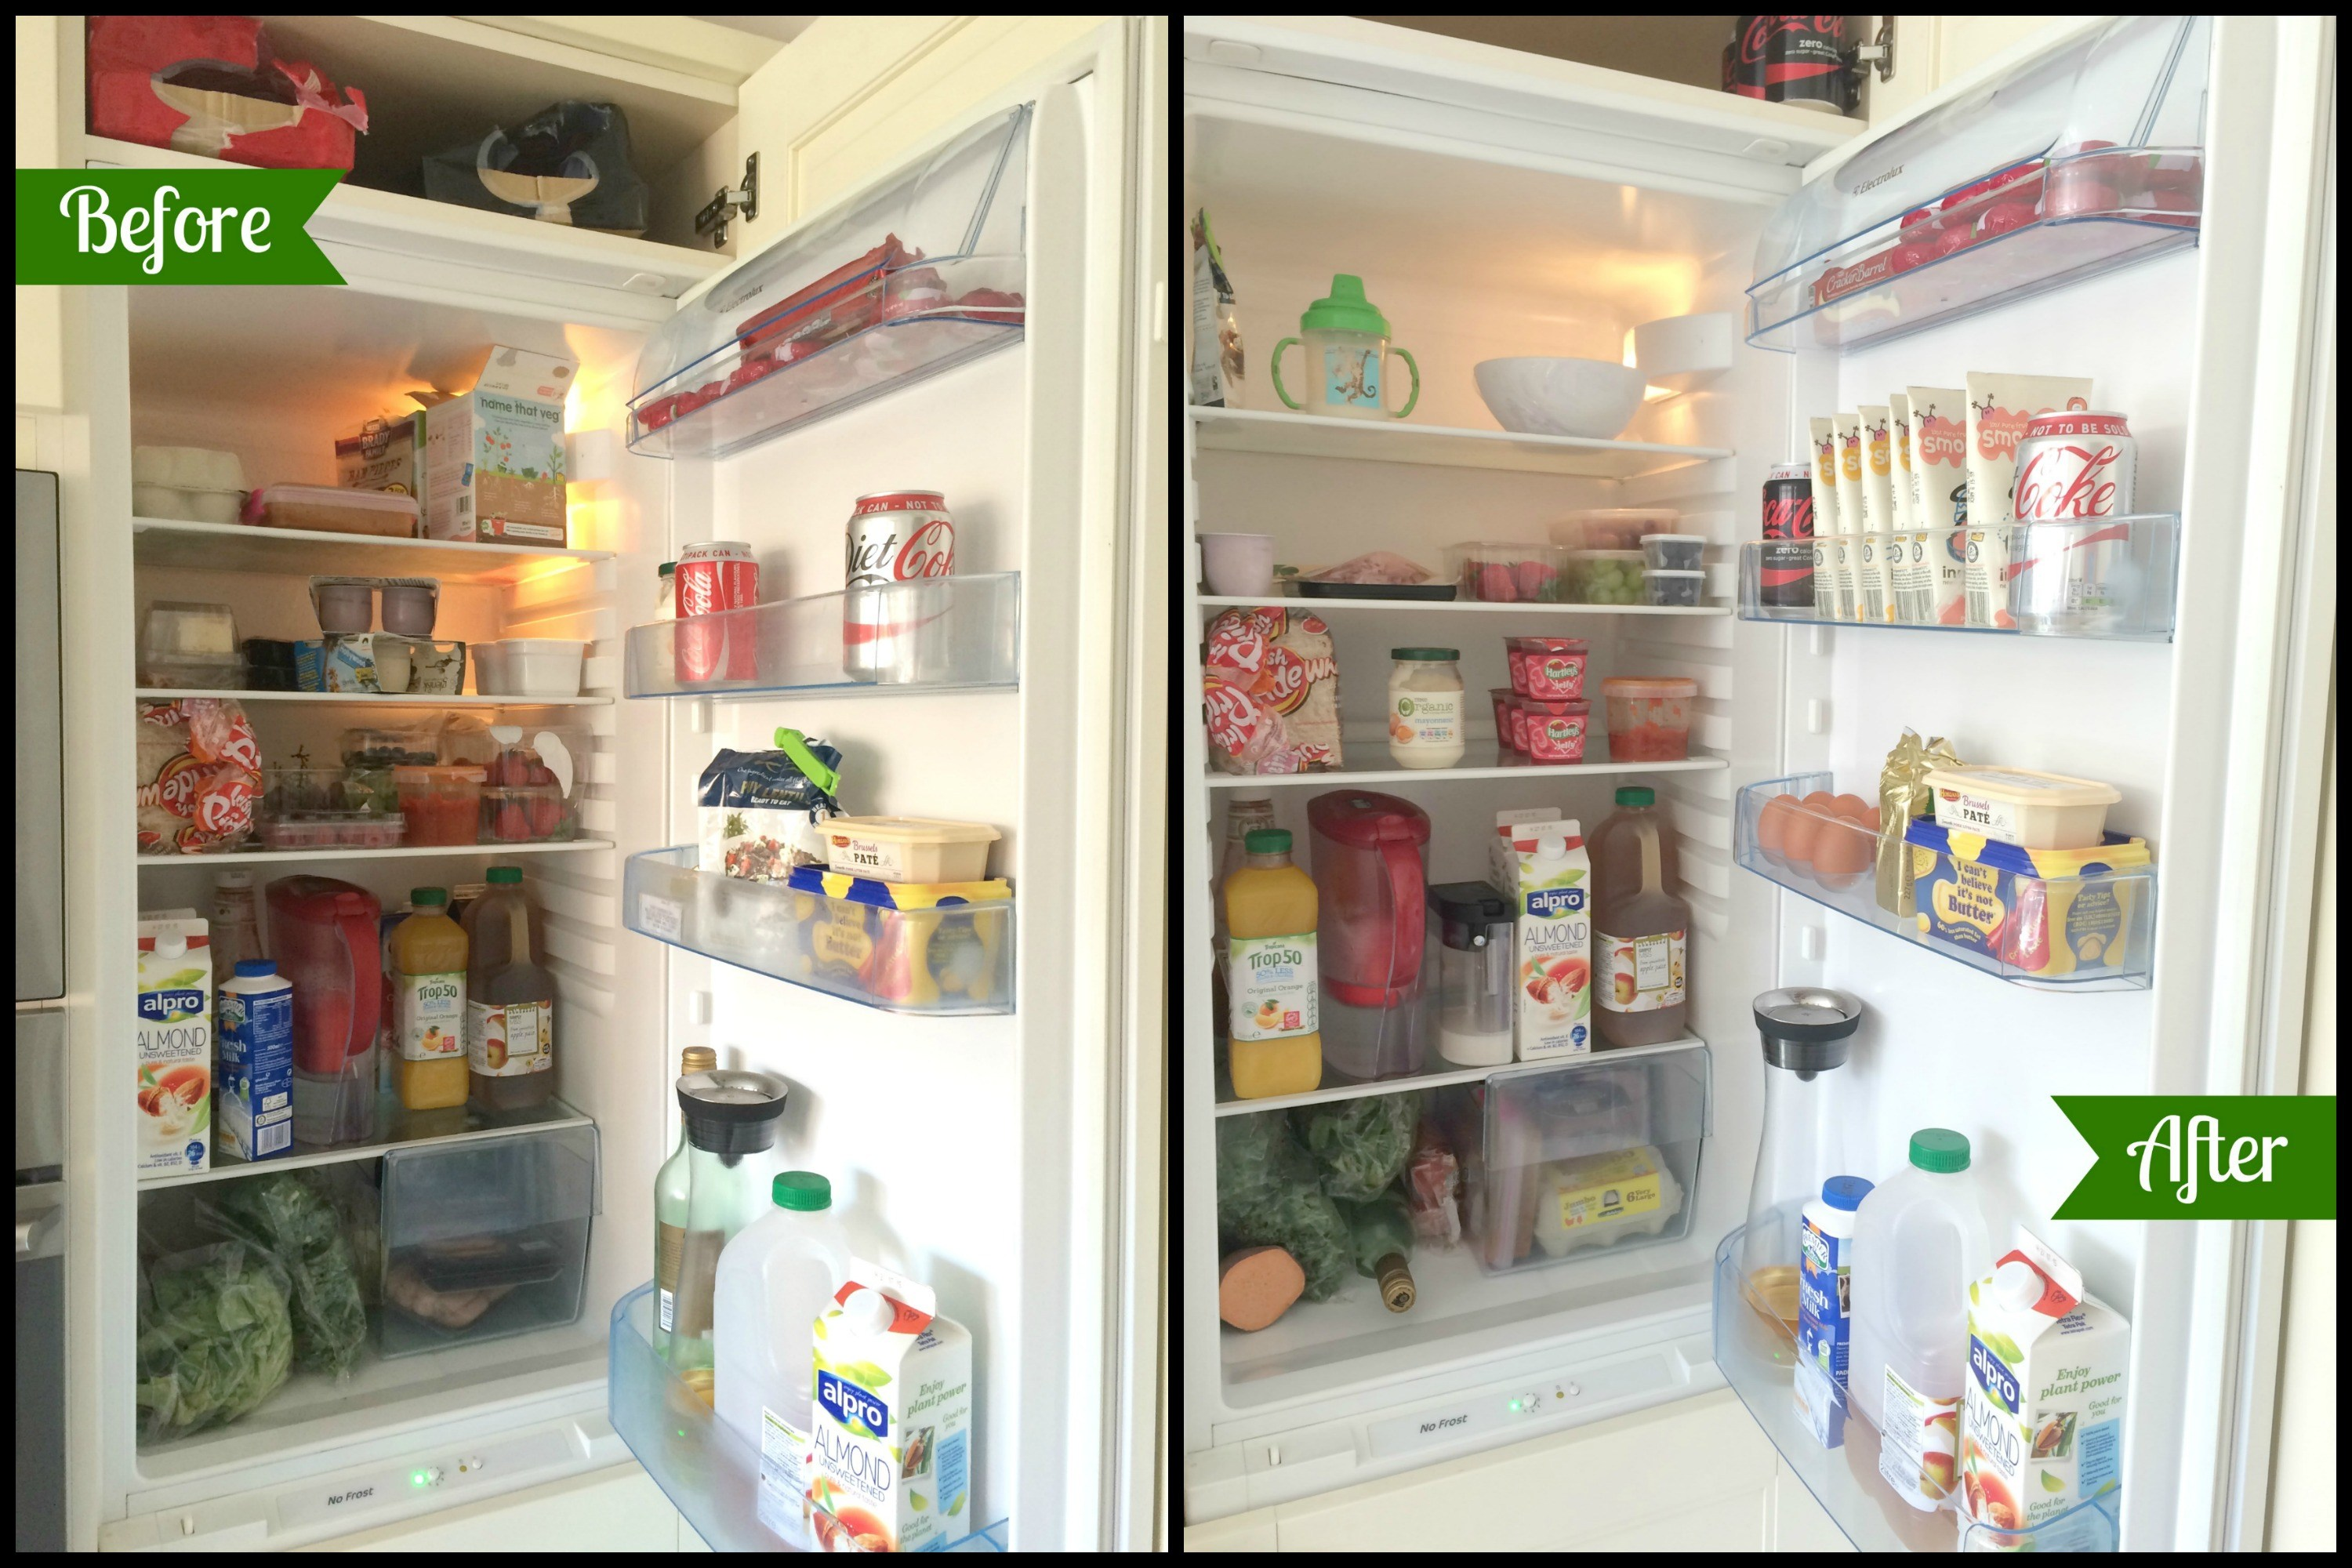 5 Before and After Pics That Prove the KonMari Method Works